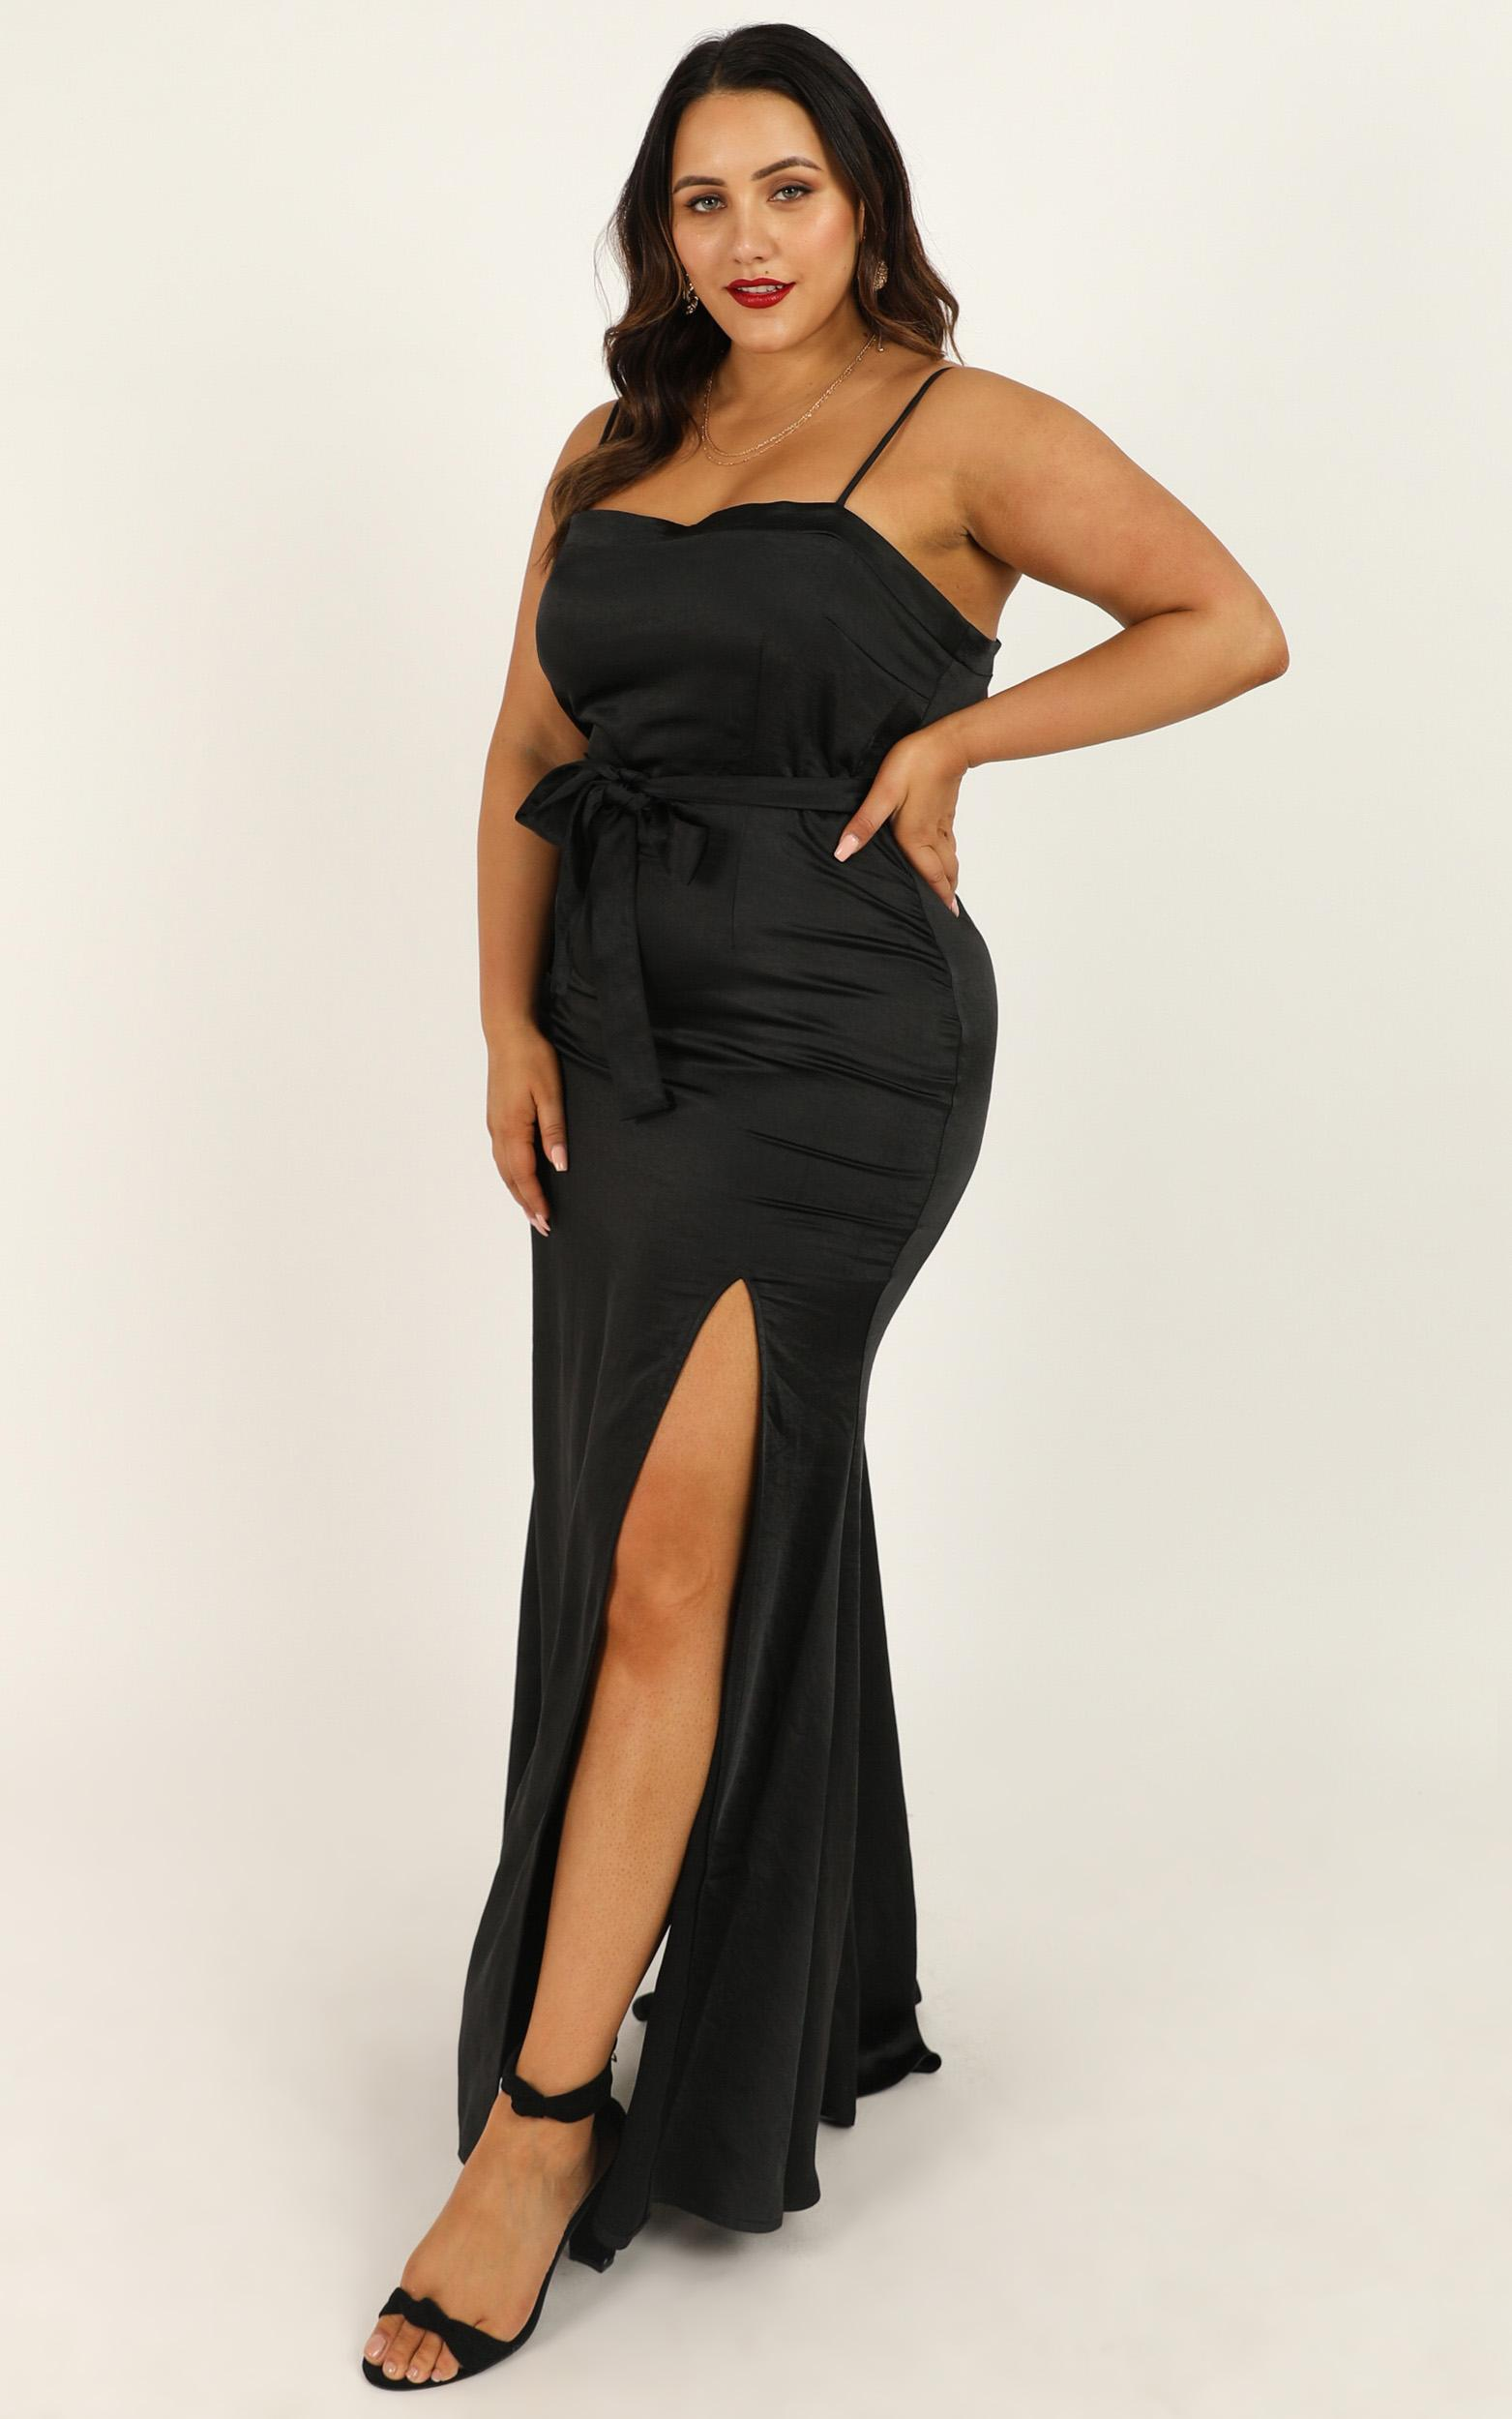 Looking Lush Dress in black satin - 20 (XXXXL), Black, hi-res image number null